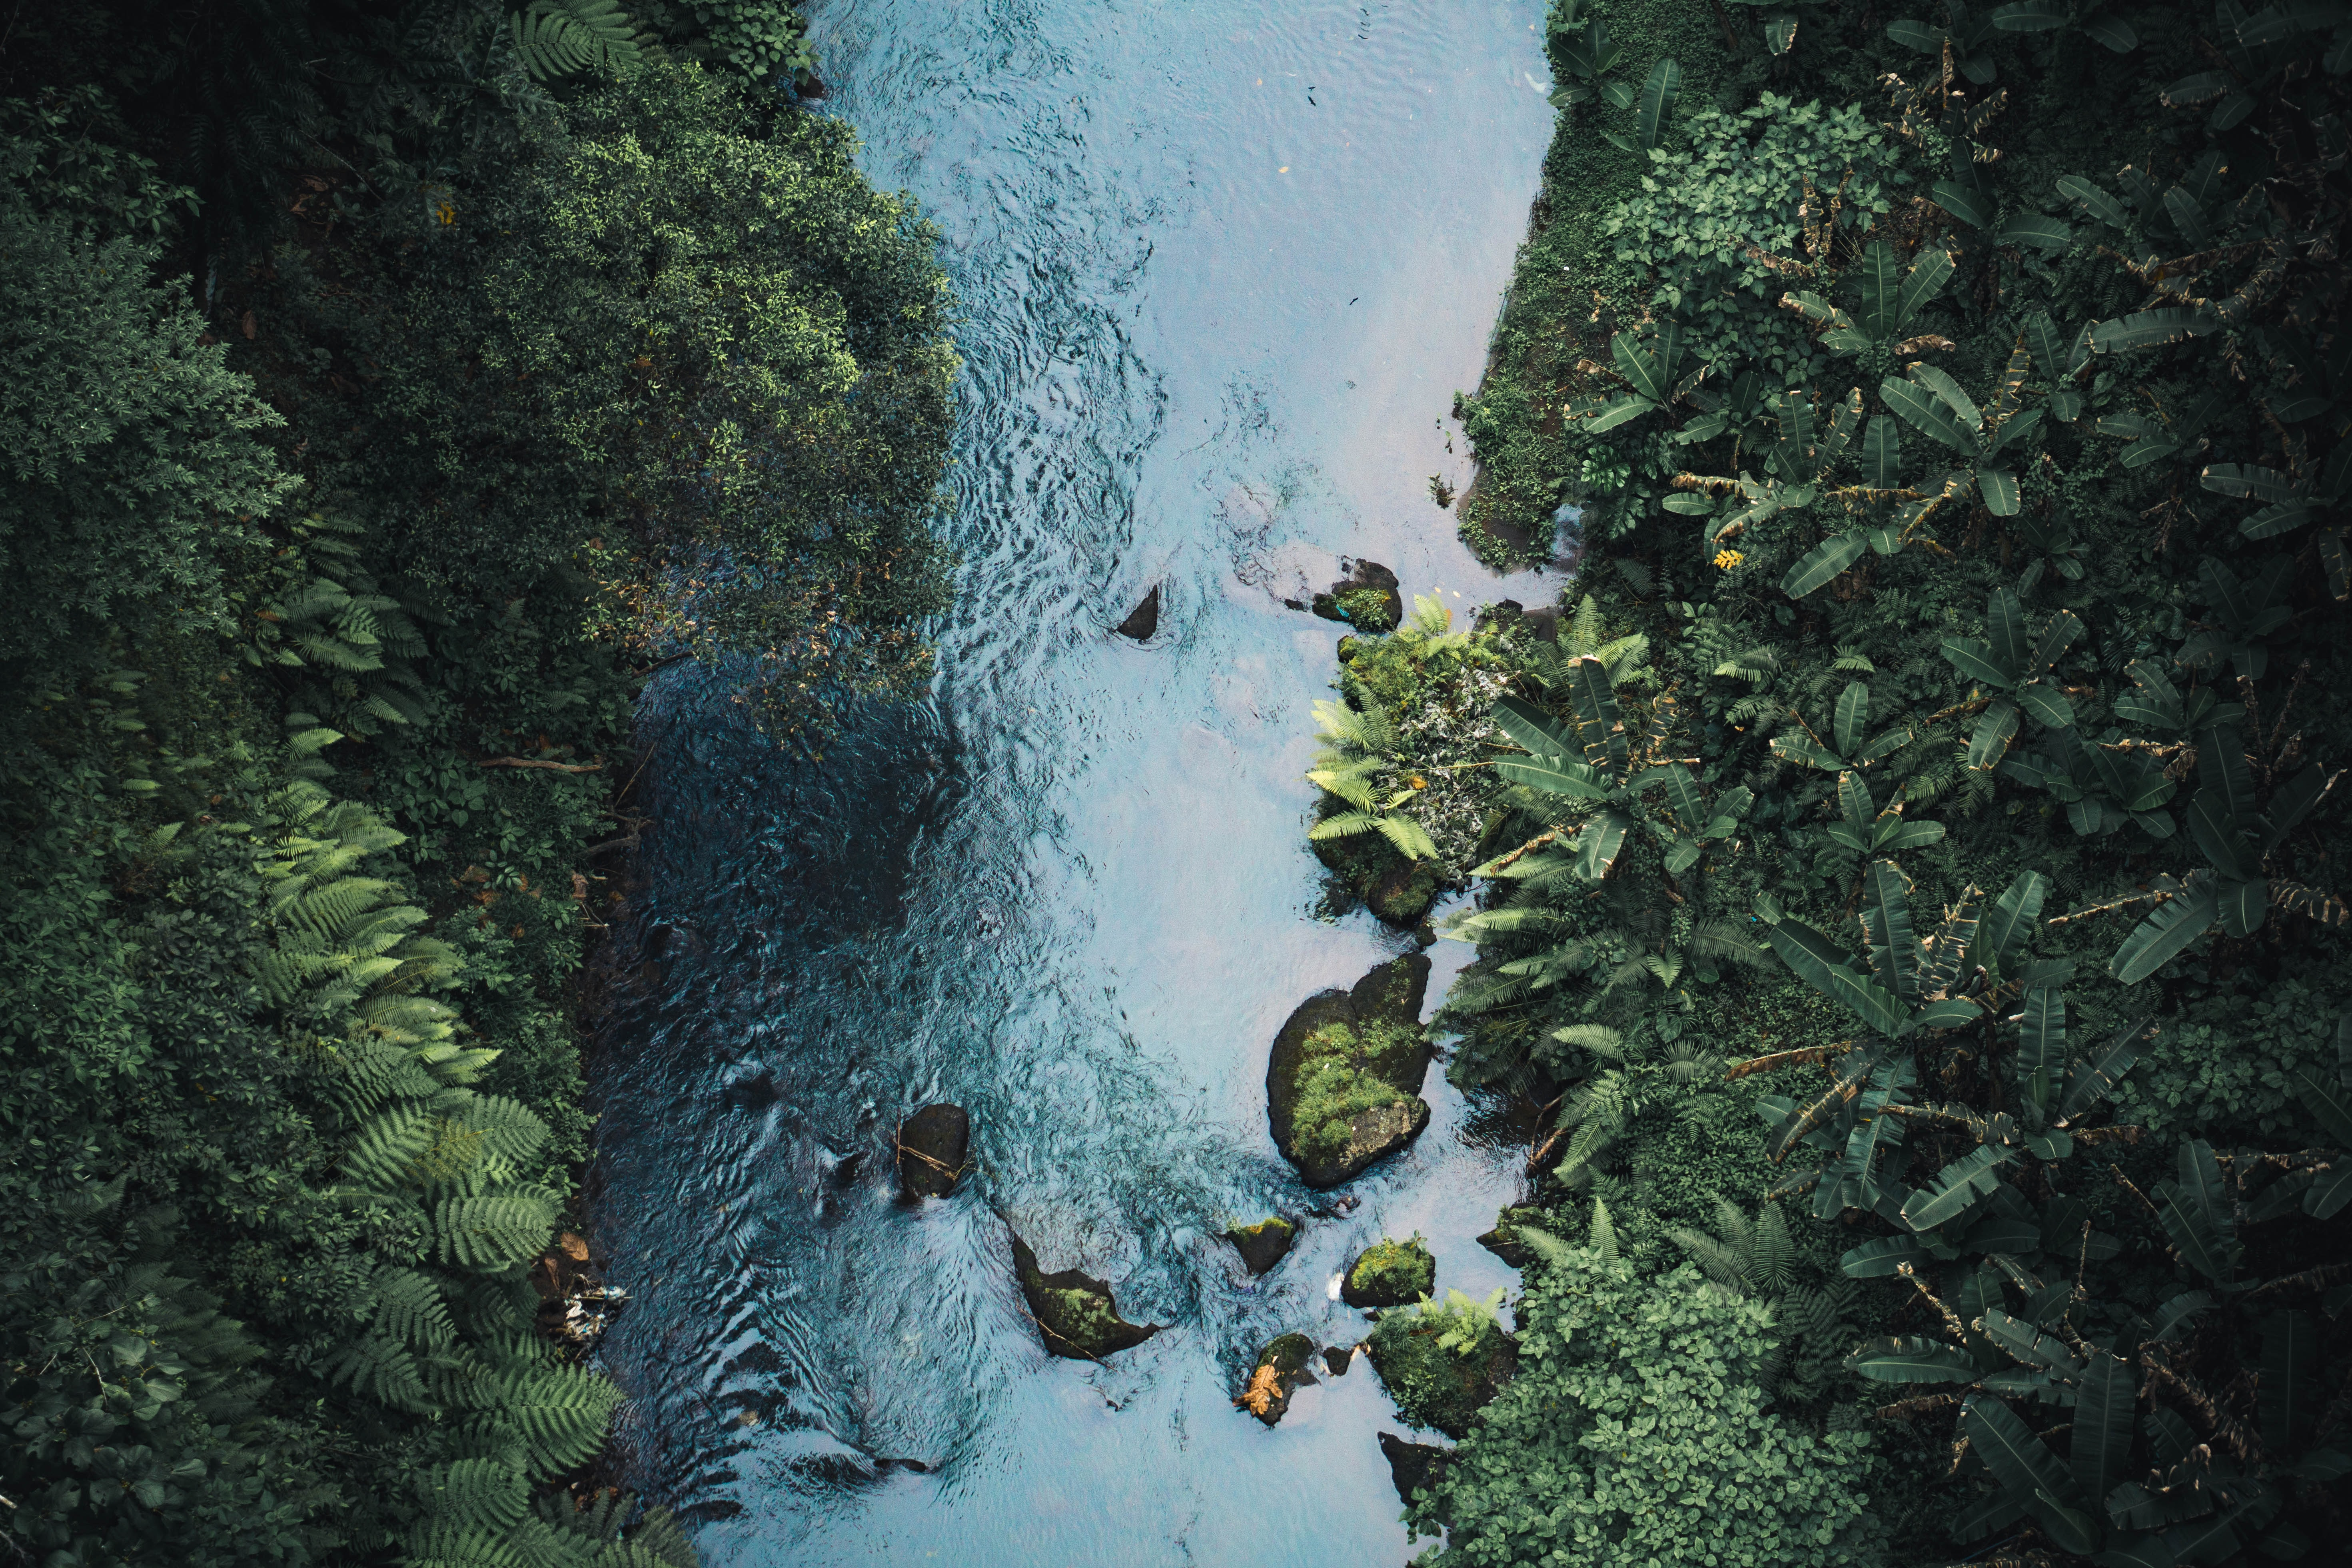 aerial photo of stream between green trees at daytime